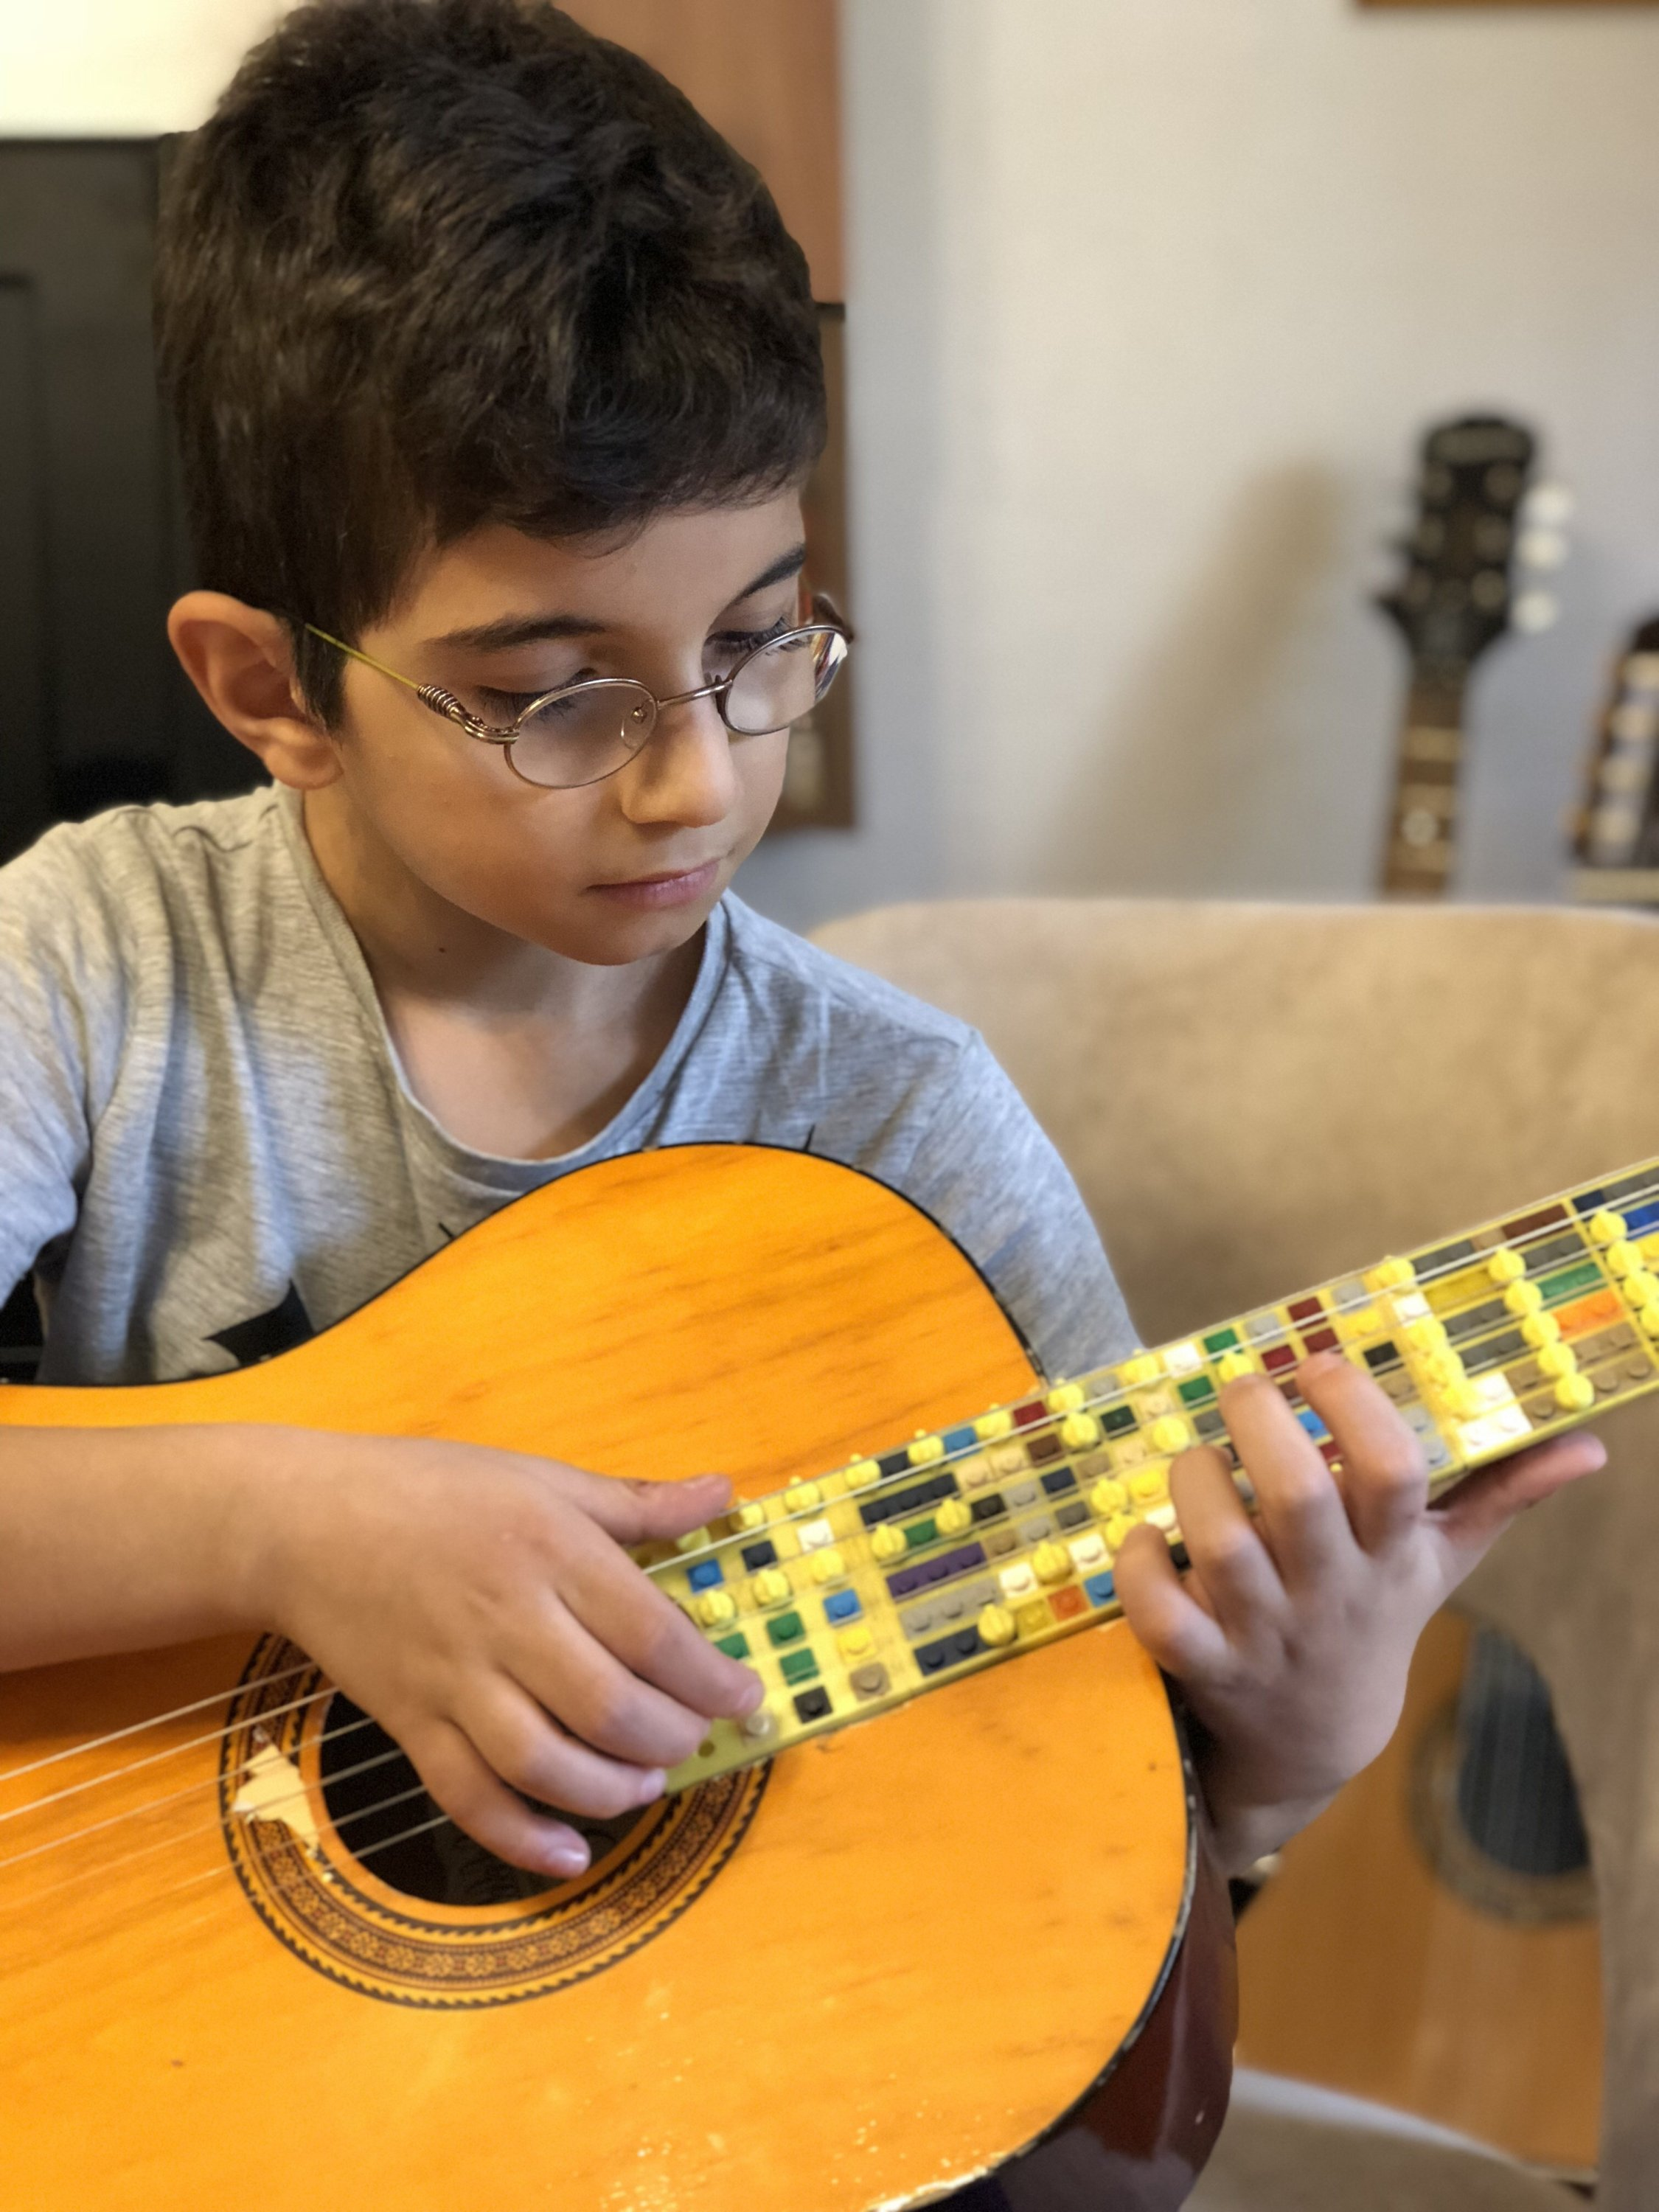 Atlas Çoğulu plays his Lego Microtonal Guitar.